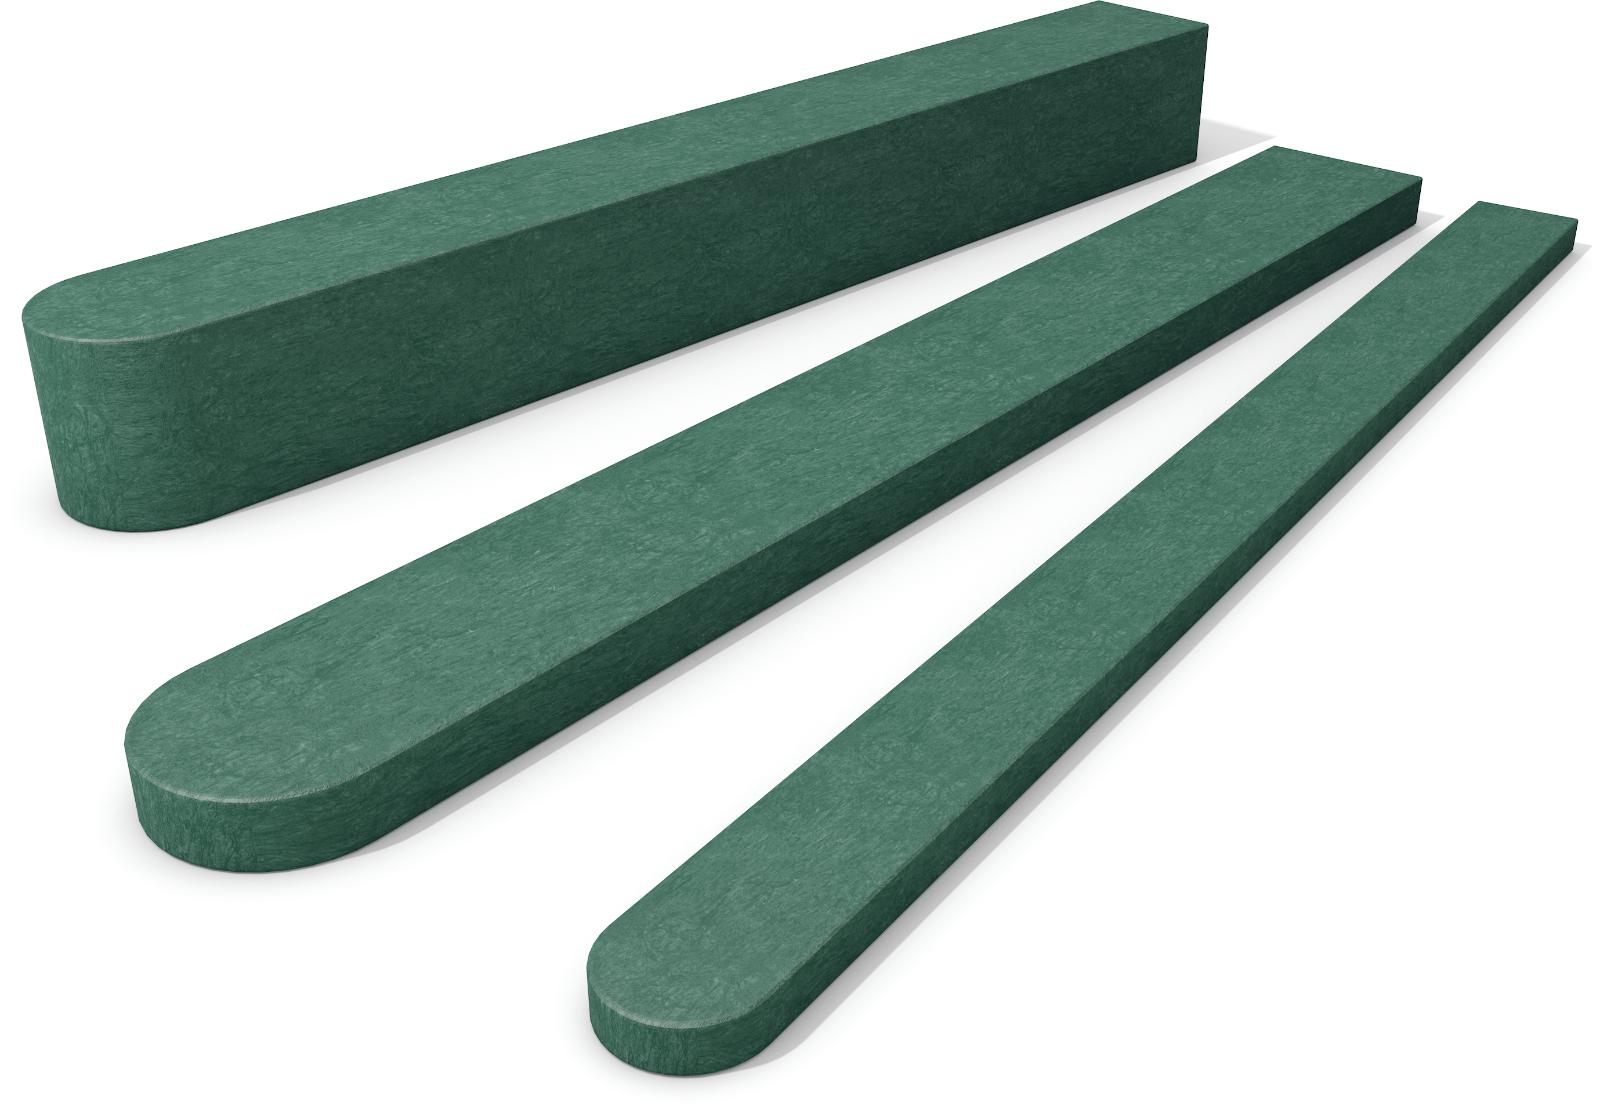 Fence Post with Round End Green 90mm x 90mm x 1000mm